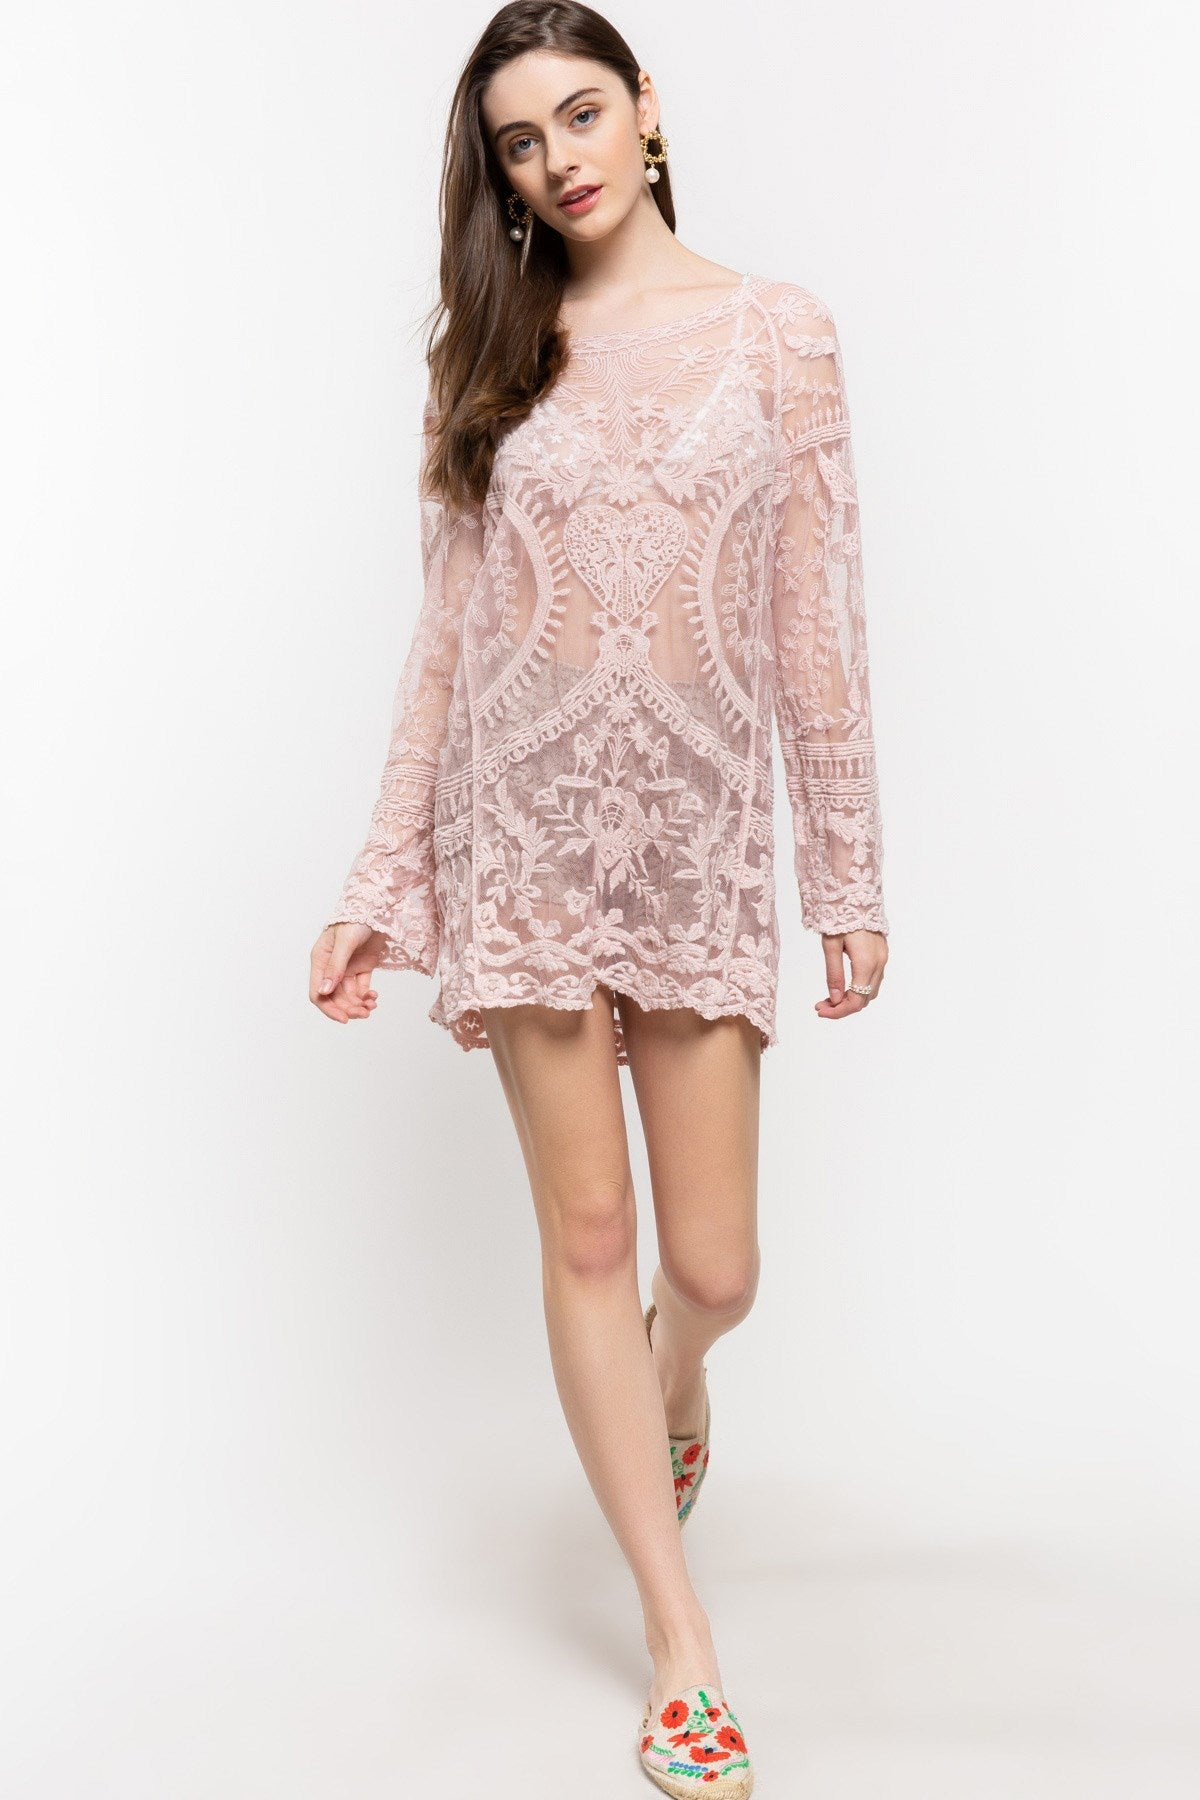 Bohemian Lace Tunic Top